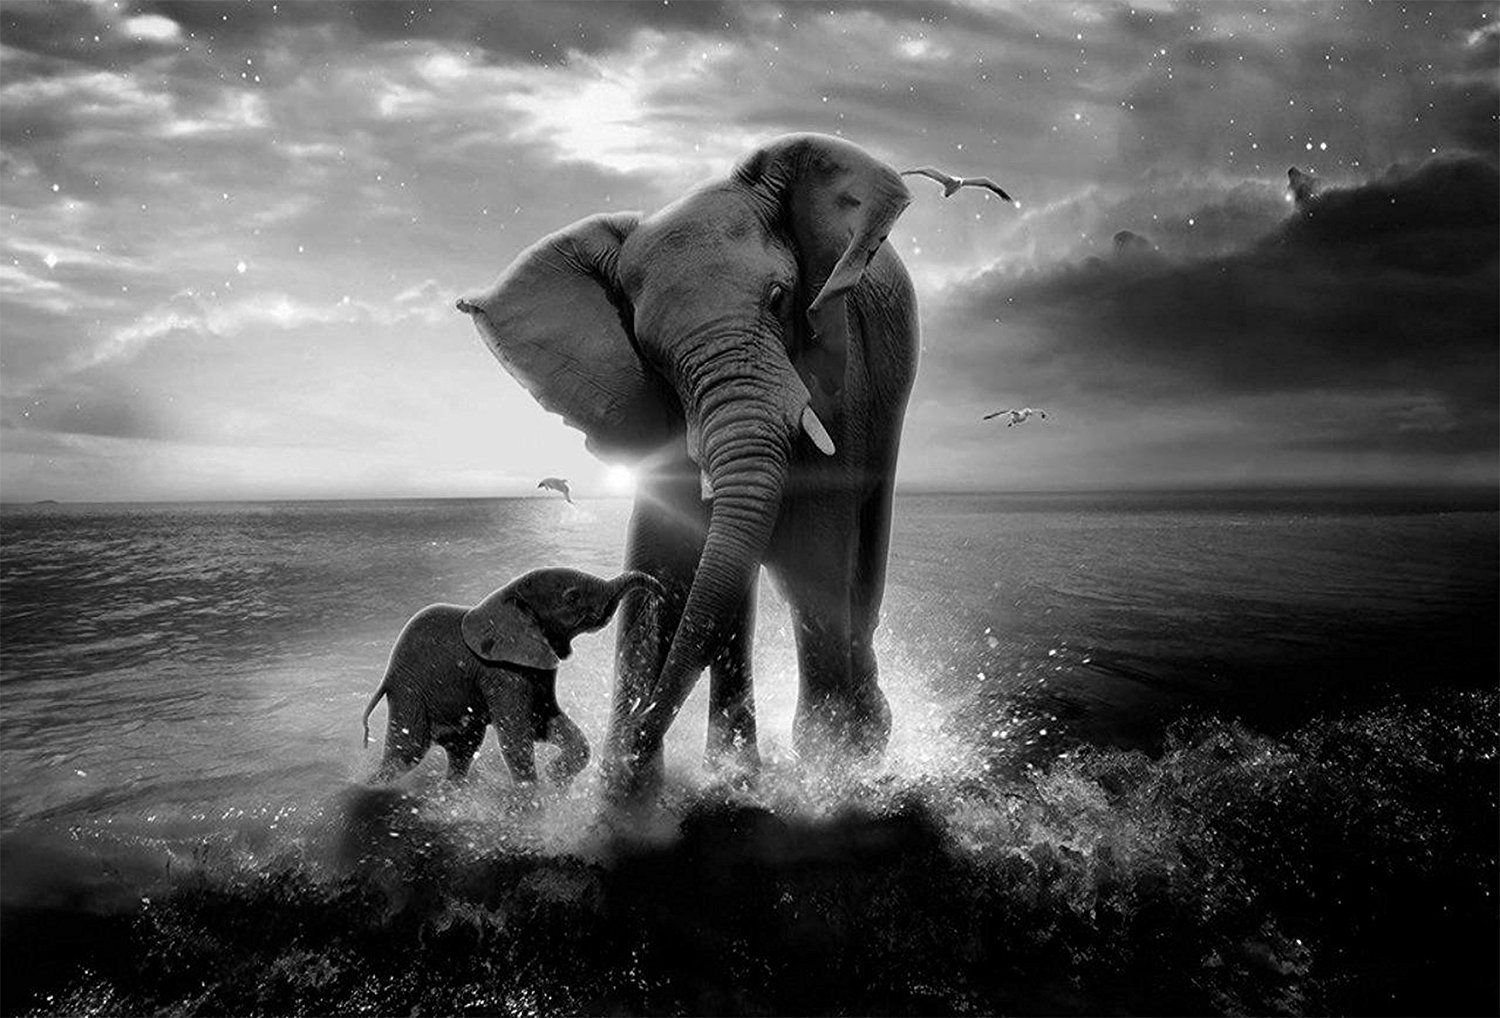 Elephant Mom and Baby Art Canvas Print Modern Wall Decor Artwork Drop shipping